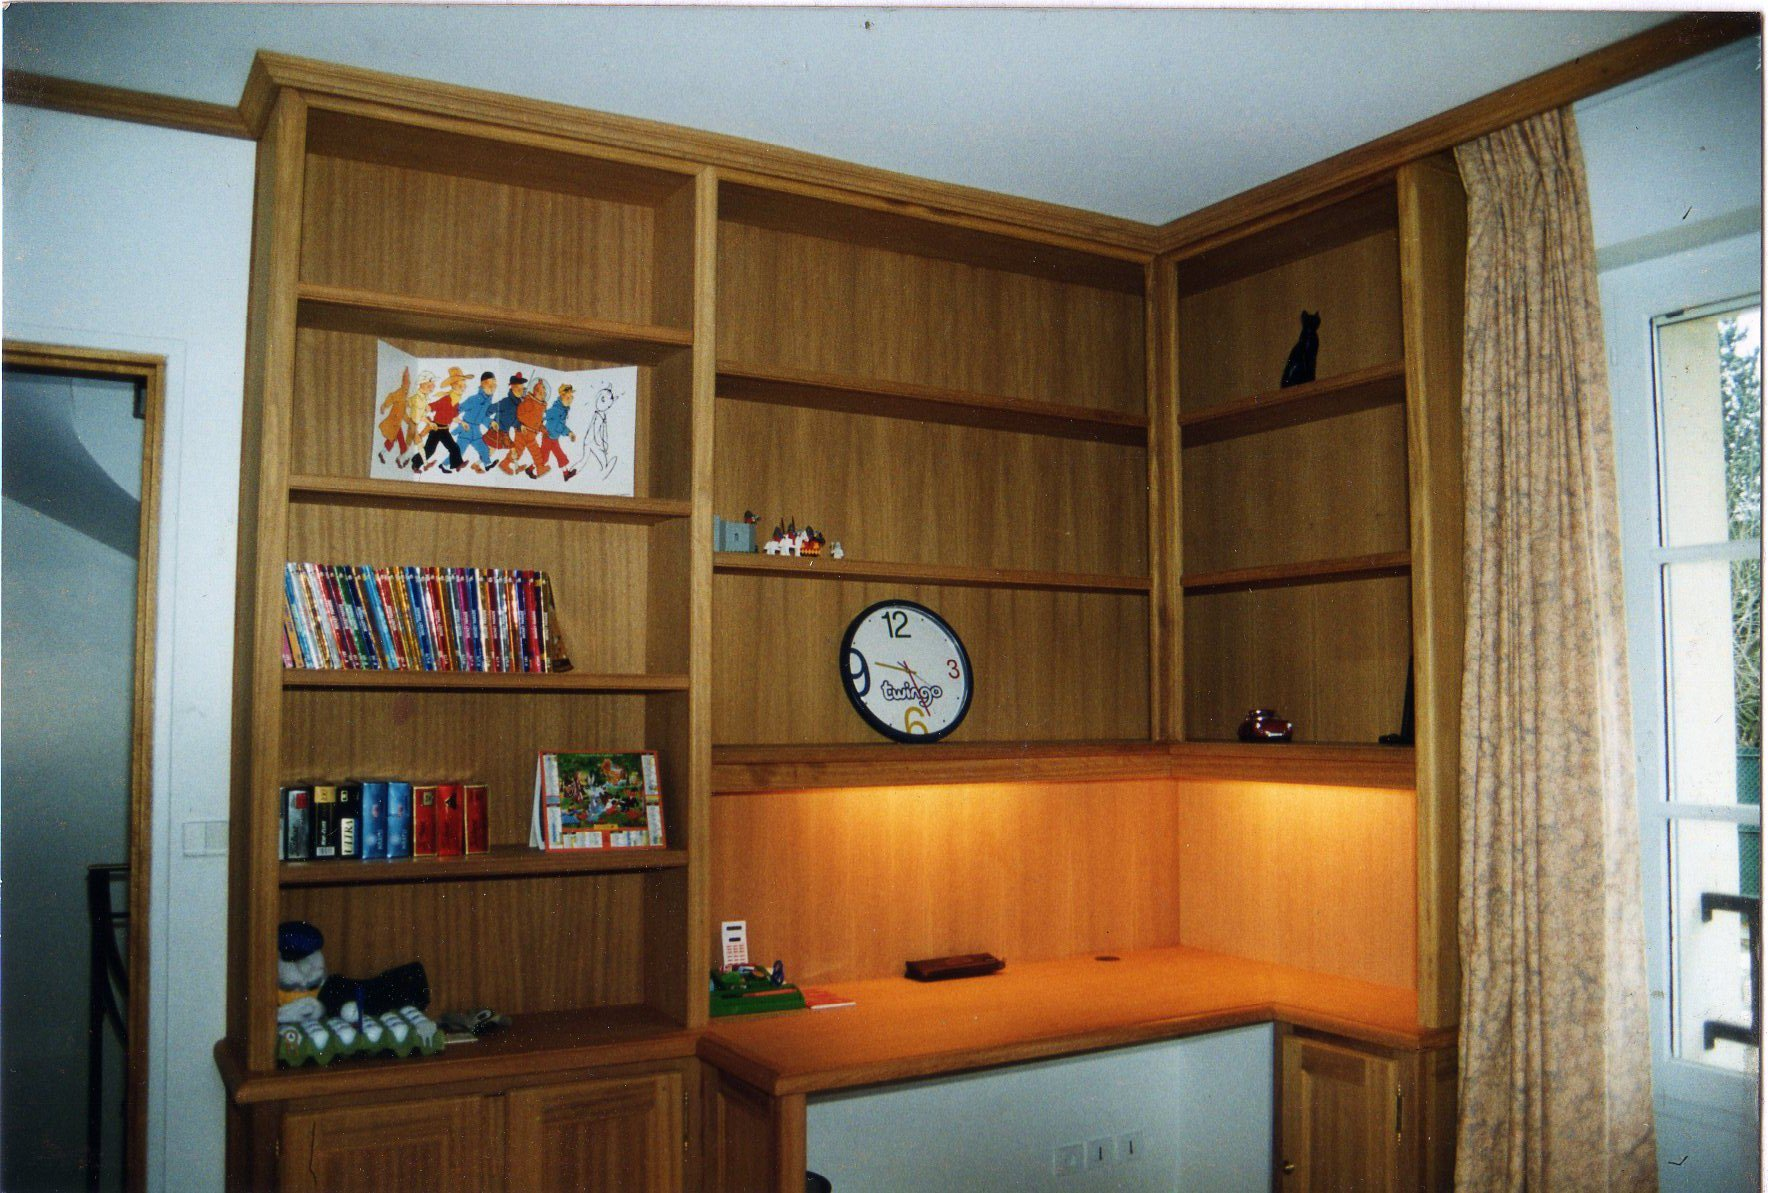 Am nagement int rieur sarl beaun lamouret - Bureau bibliotheque integre ...